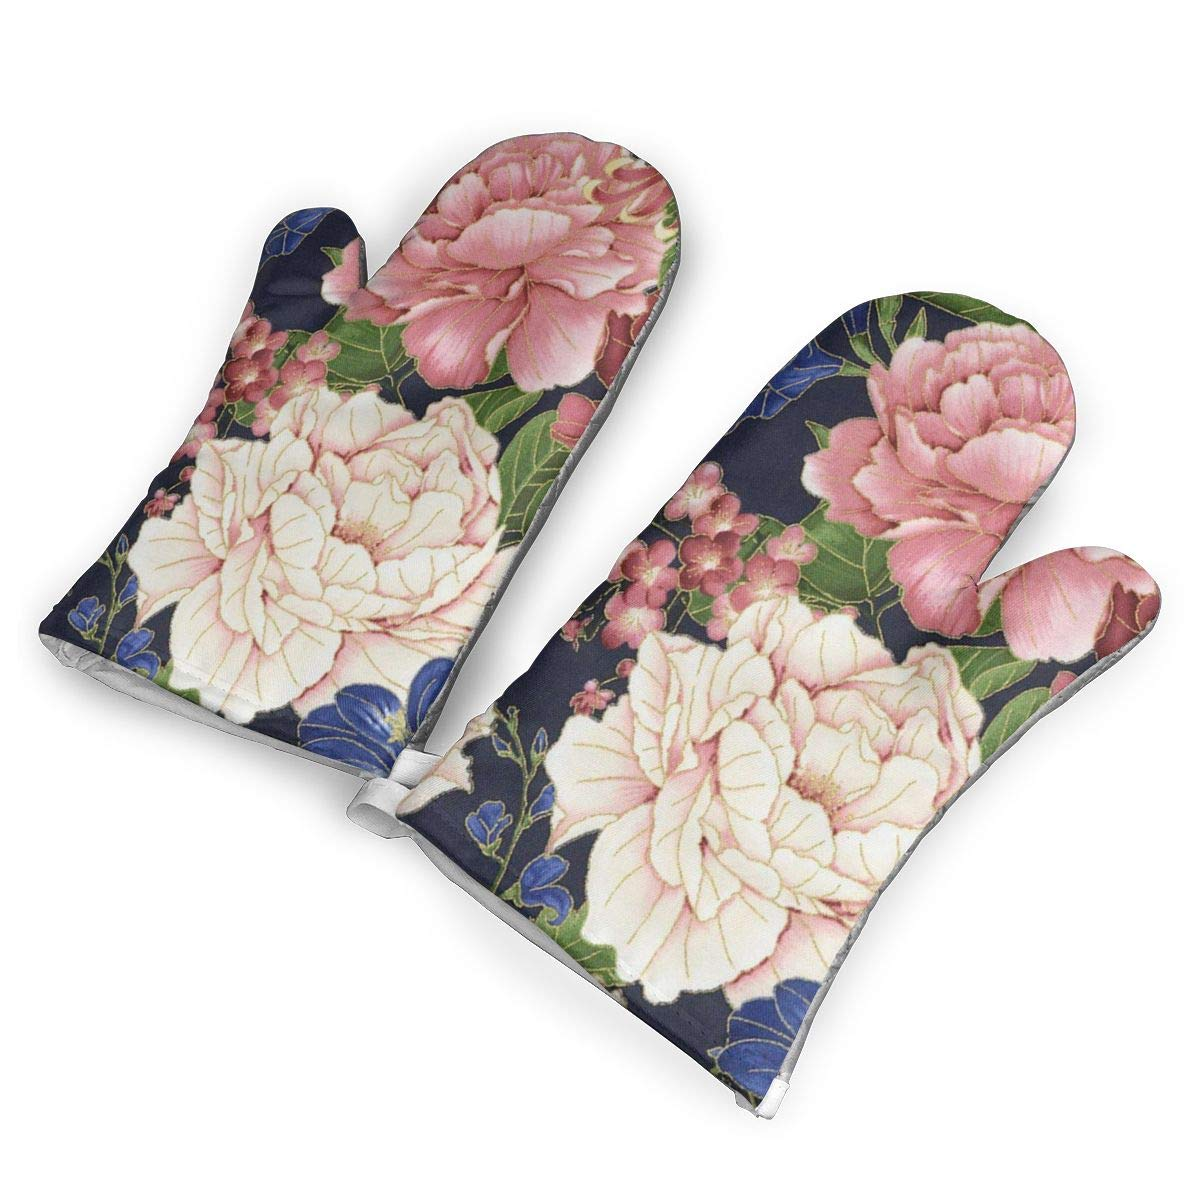 VshiXzno Sakura Chrysanthemums and Peonies Oven Mitts,Professional Heat Resistant to 500?? F,Non-Slip Kitchen Oven Gloves for Cooking,Baking,Grilling,Barbecue Potholders